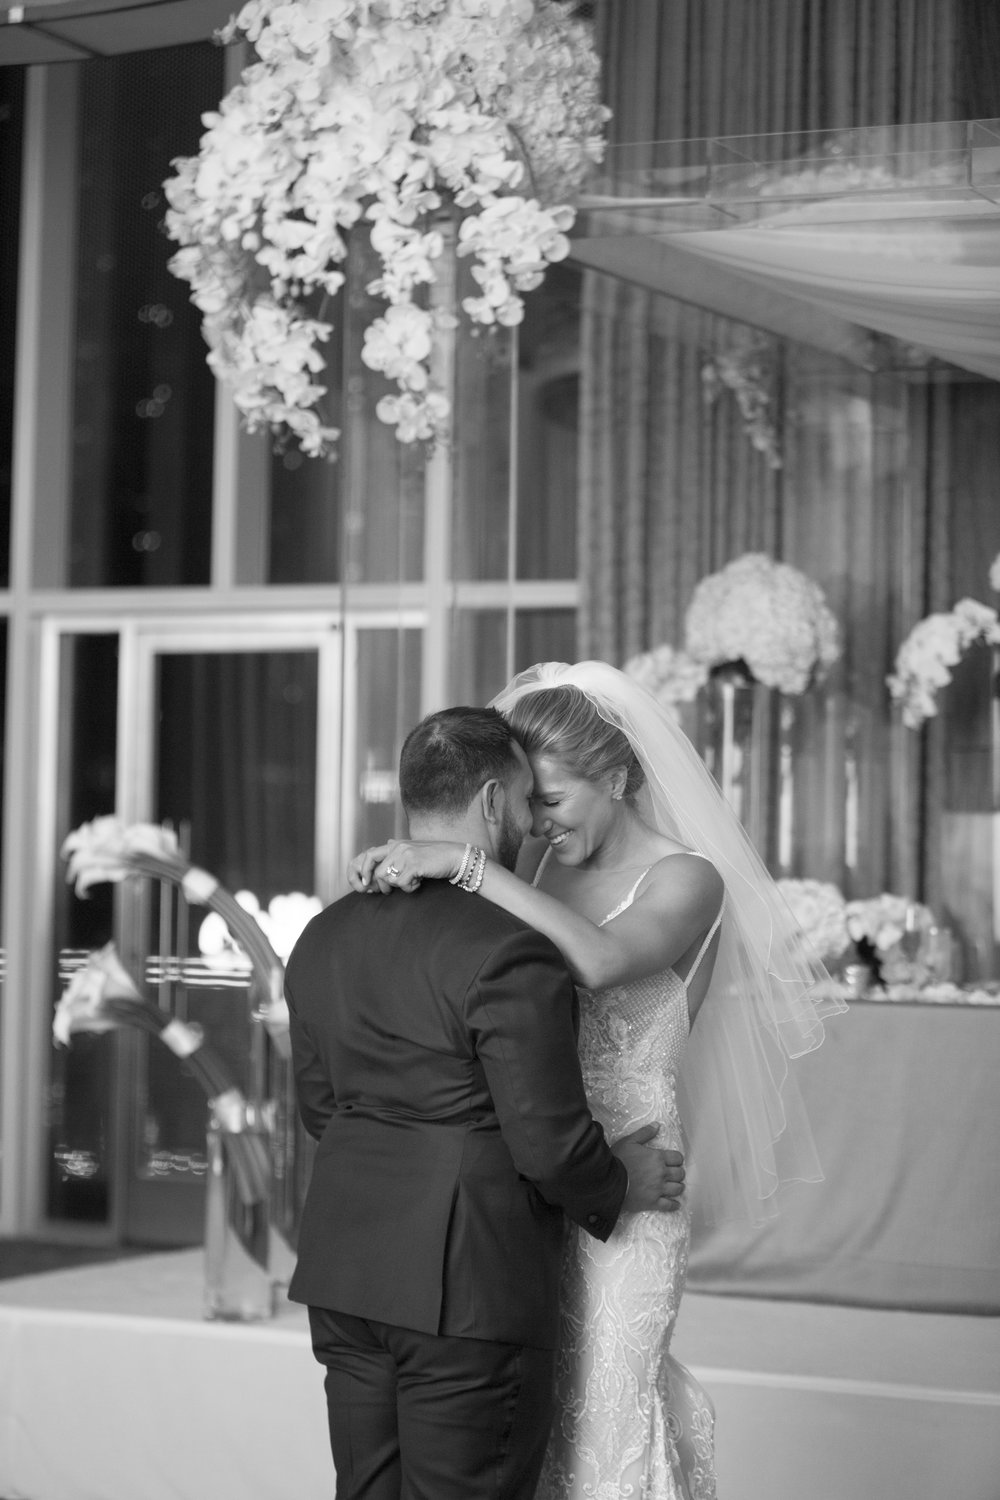 First dance for bride and groom in black and white. WEDDING PLANNING & EVENT DESIGN •  Andrea Eppolito Events , PHOTOGRAPHY •  AltF Photography ,  FLORAL AND DECOR DESIGN & PRODUCTION • Destinations by Design , CATERING •  Mandarin Oriental Las Vegas , COCKTAILS •  The Grand Bevy , WEDDING GOWN •  Galia Lahav ,  SHOES •  Jimmy Choo , ACRYLIC MENUS & SEATING CHART•  She Paperie